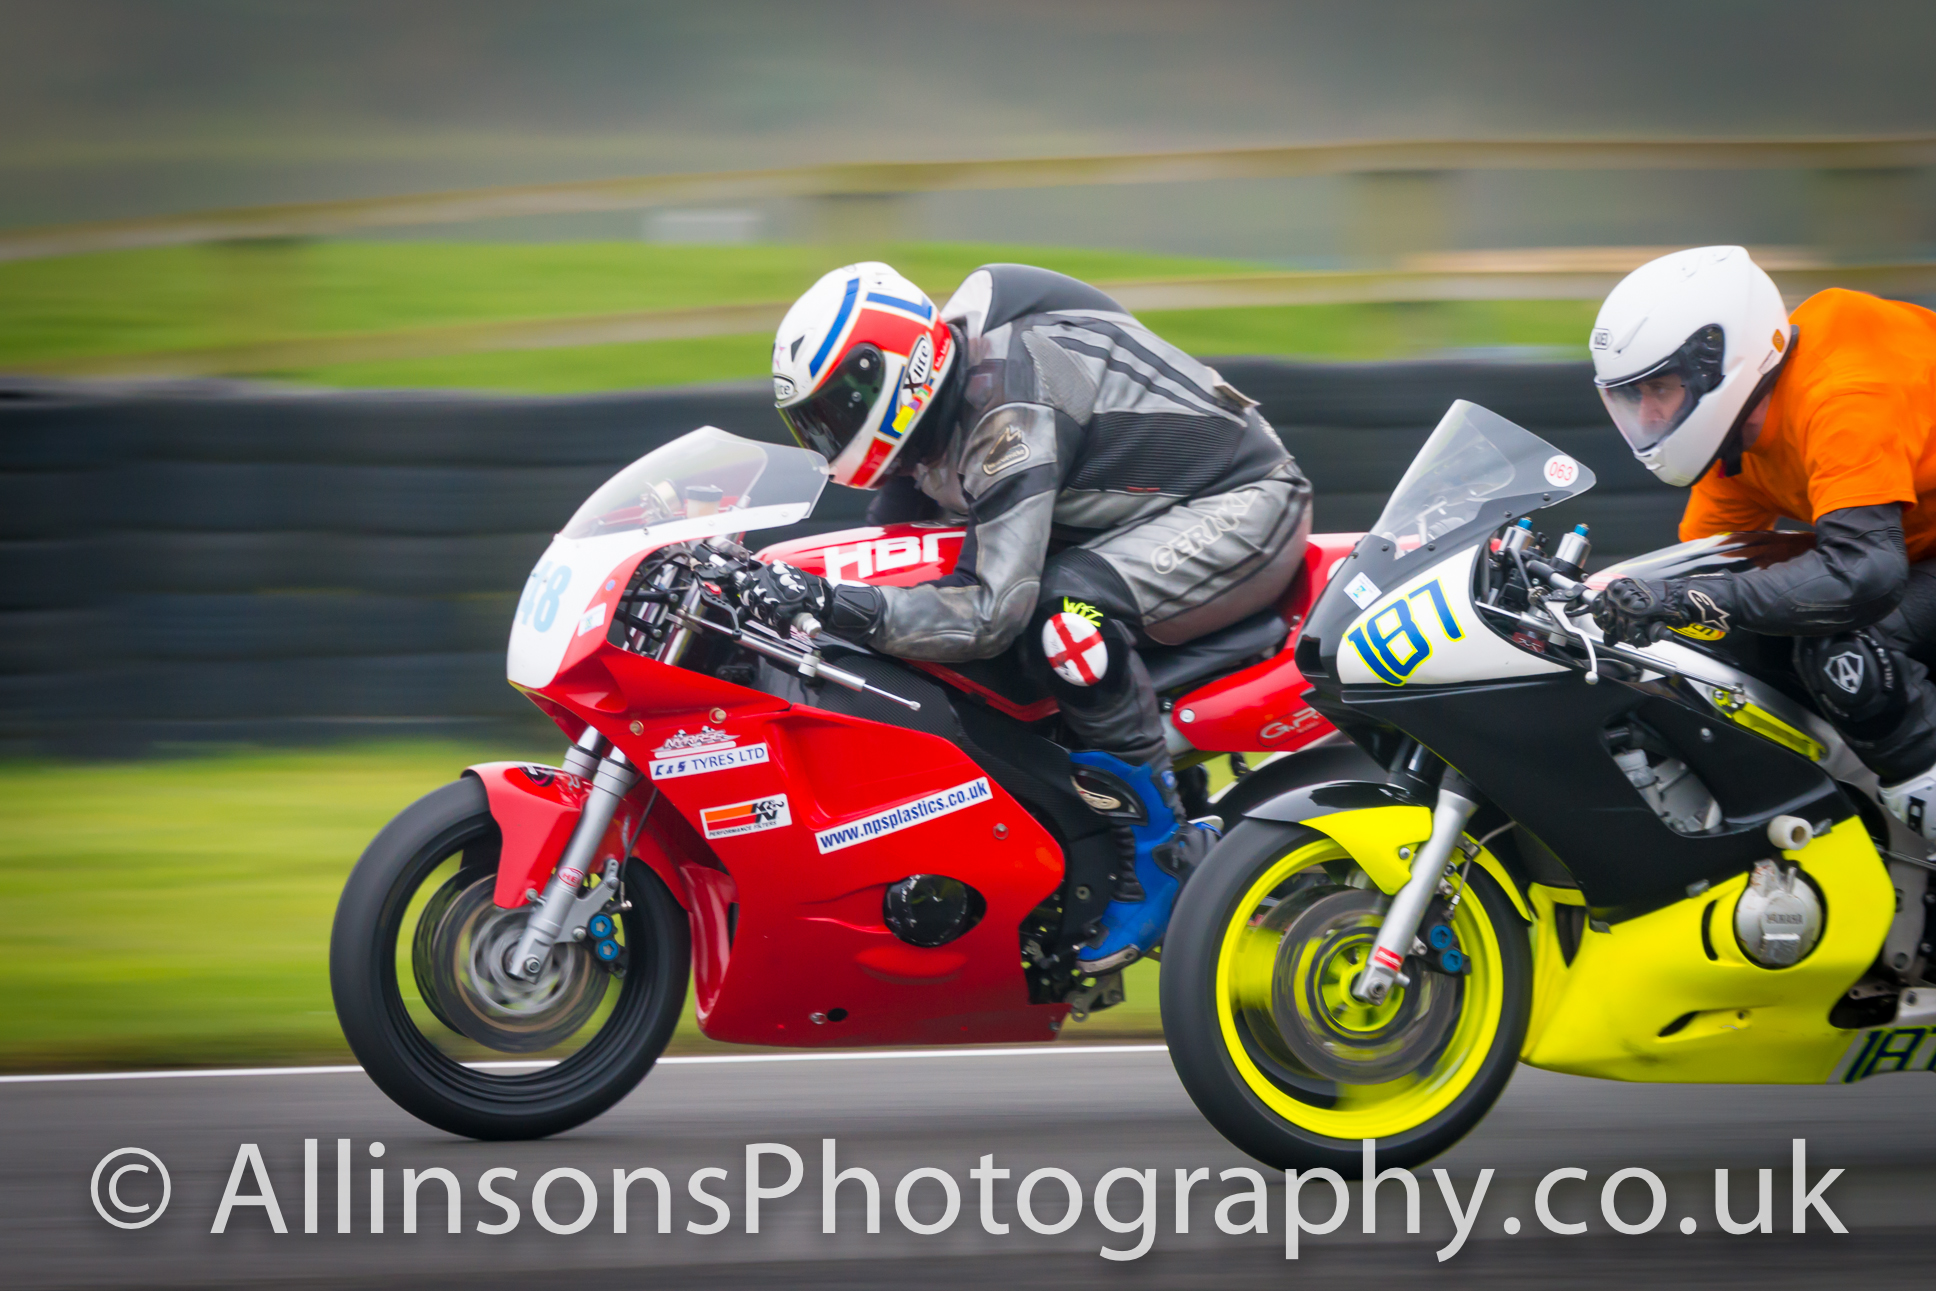 motorcycle racing photograph at Croft for NEMCRC